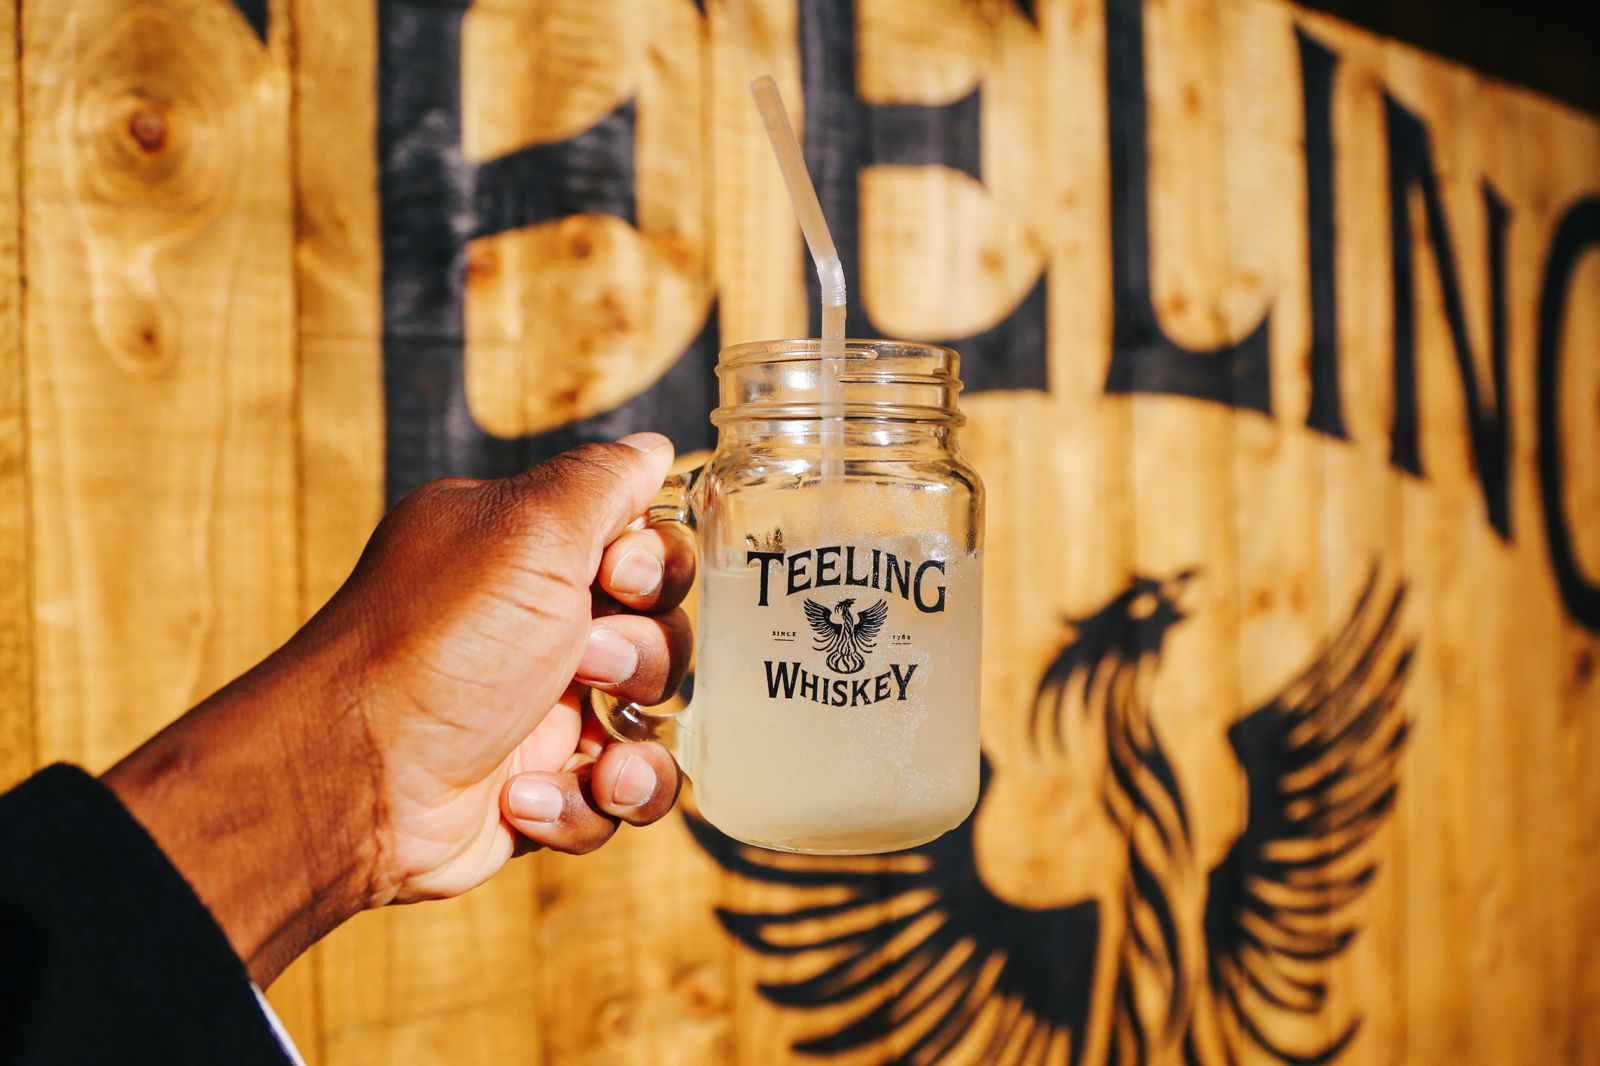 Irish Festive Fun With Teeling And A Rather Strong Poitin (21)